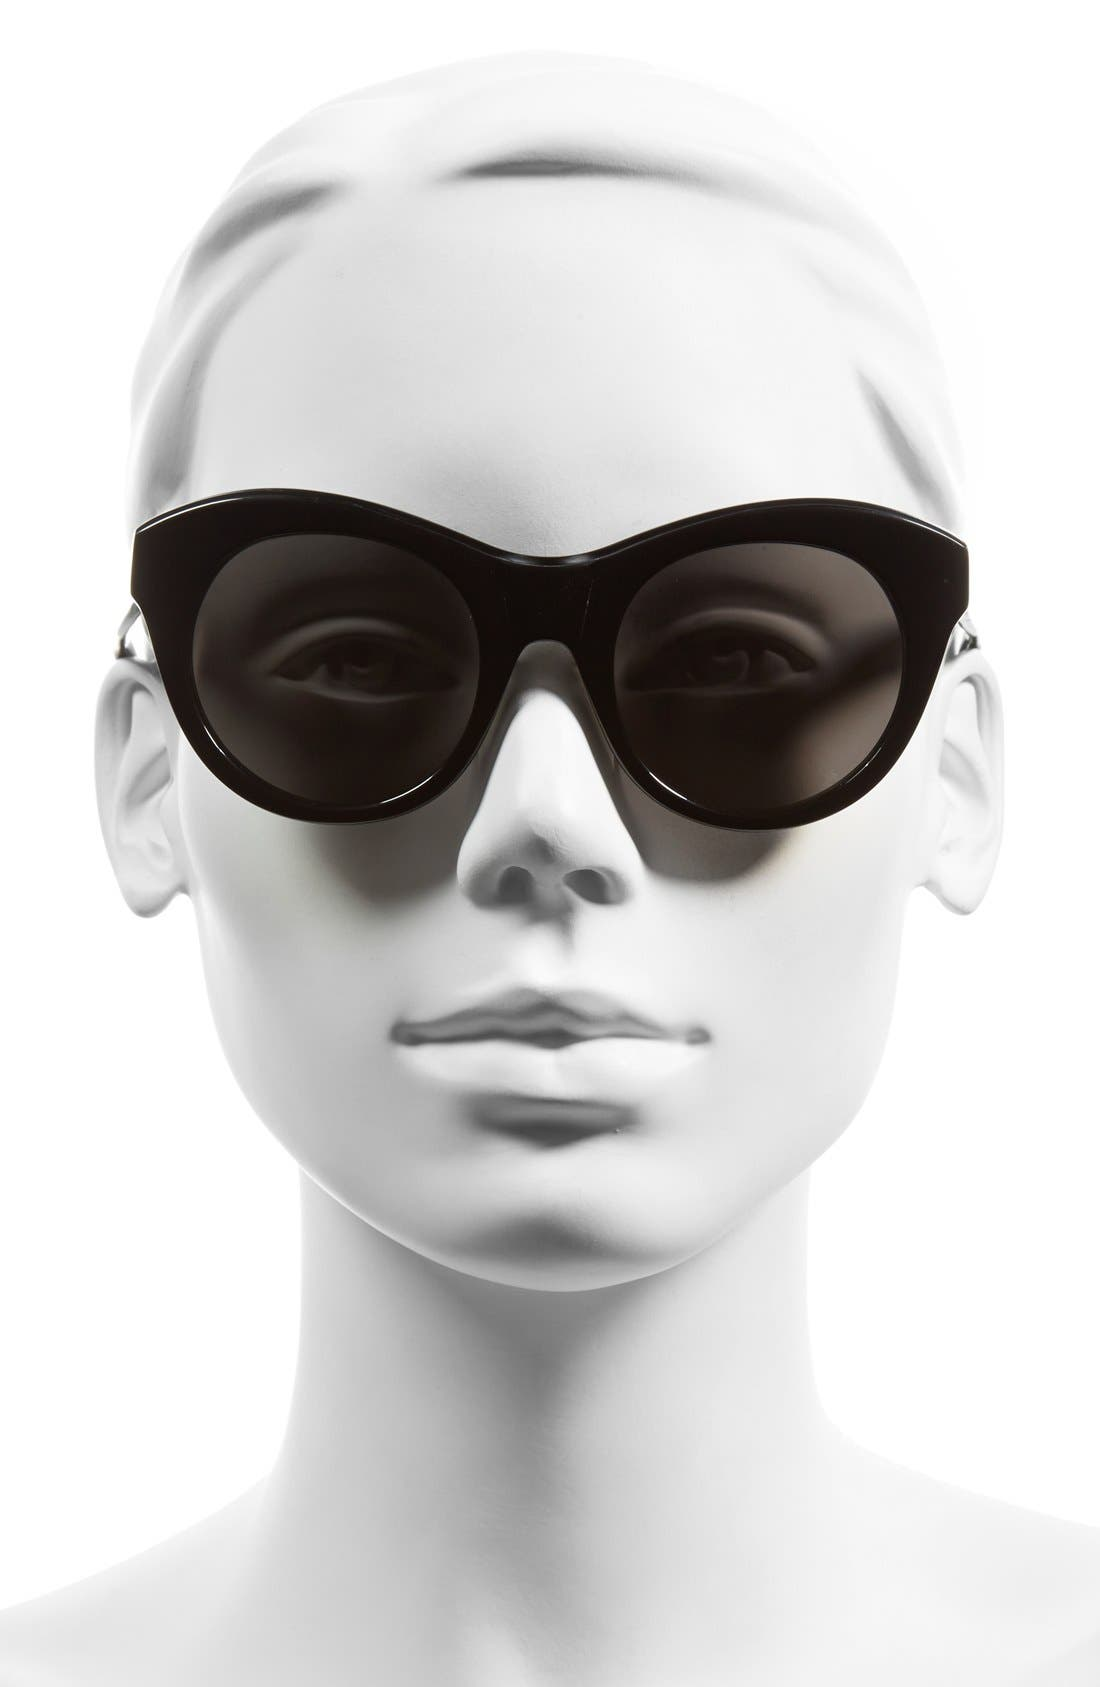 'Suffolk' 49mm Cat Eye Sunglasses,                             Alternate thumbnail 2, color,                             Shiny Black/ Smoke Mono Lens